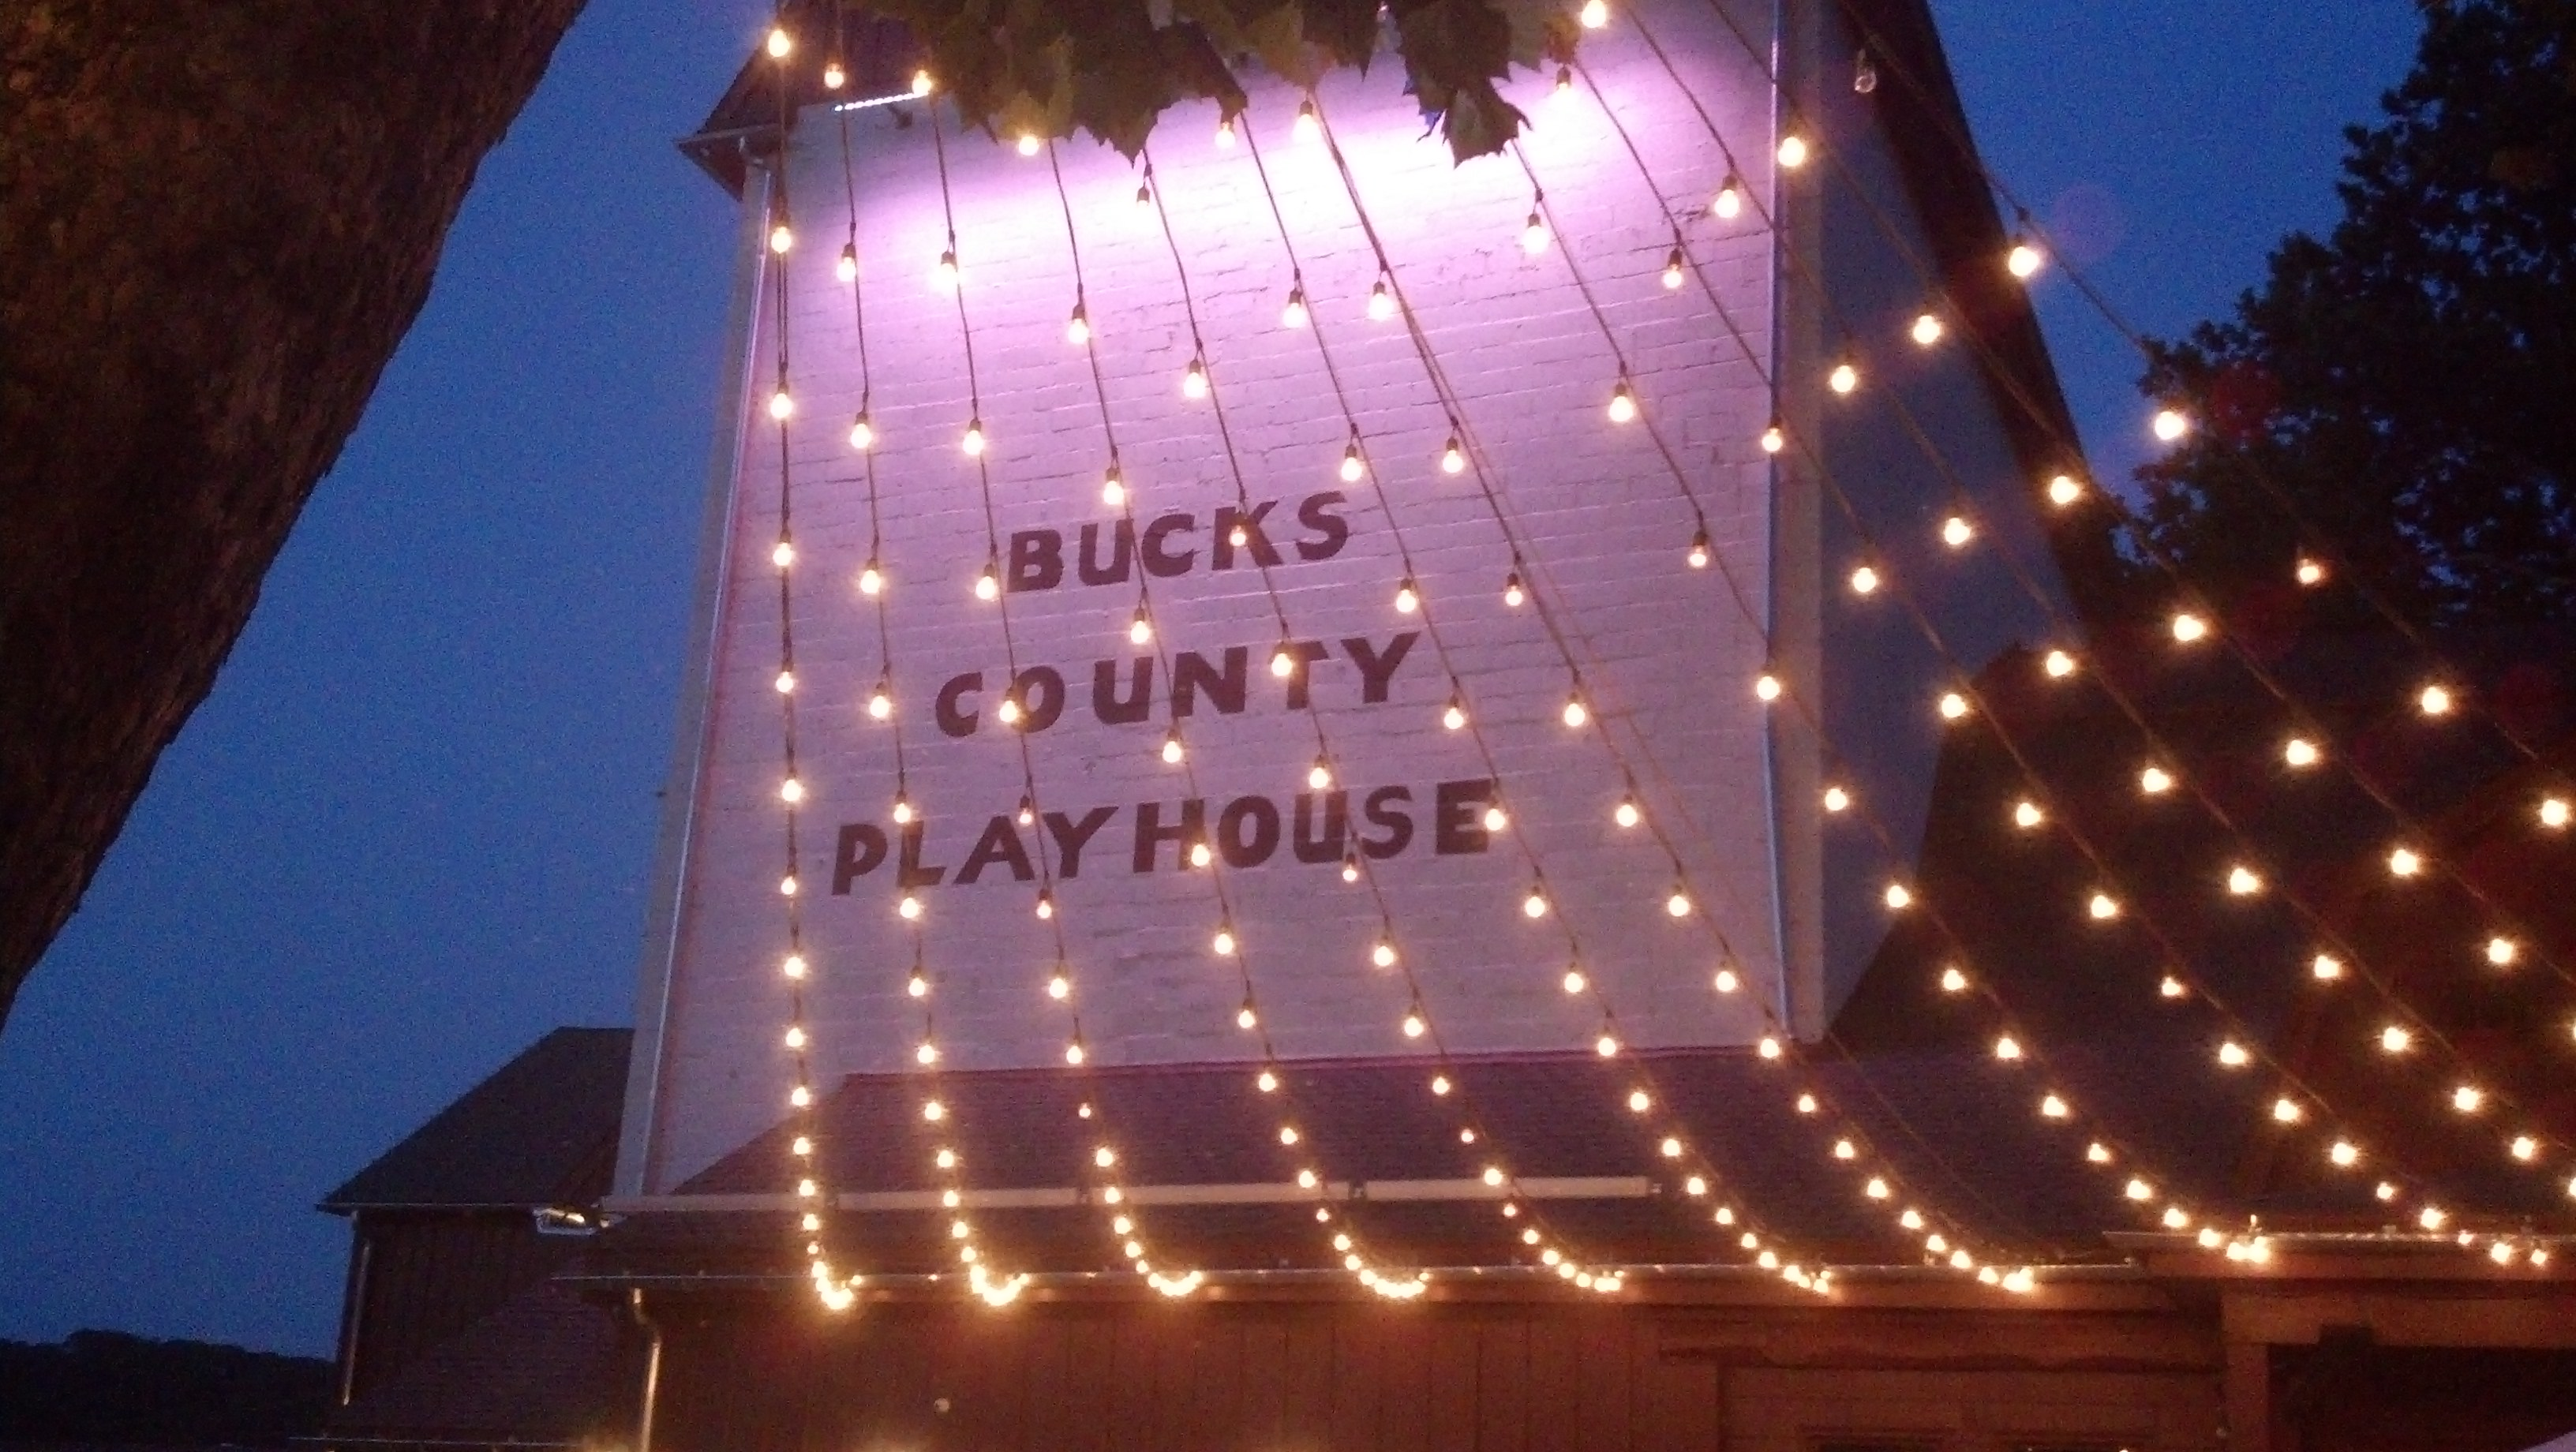 #BucksCountyPlayhouse-FindBucksCountyProperties